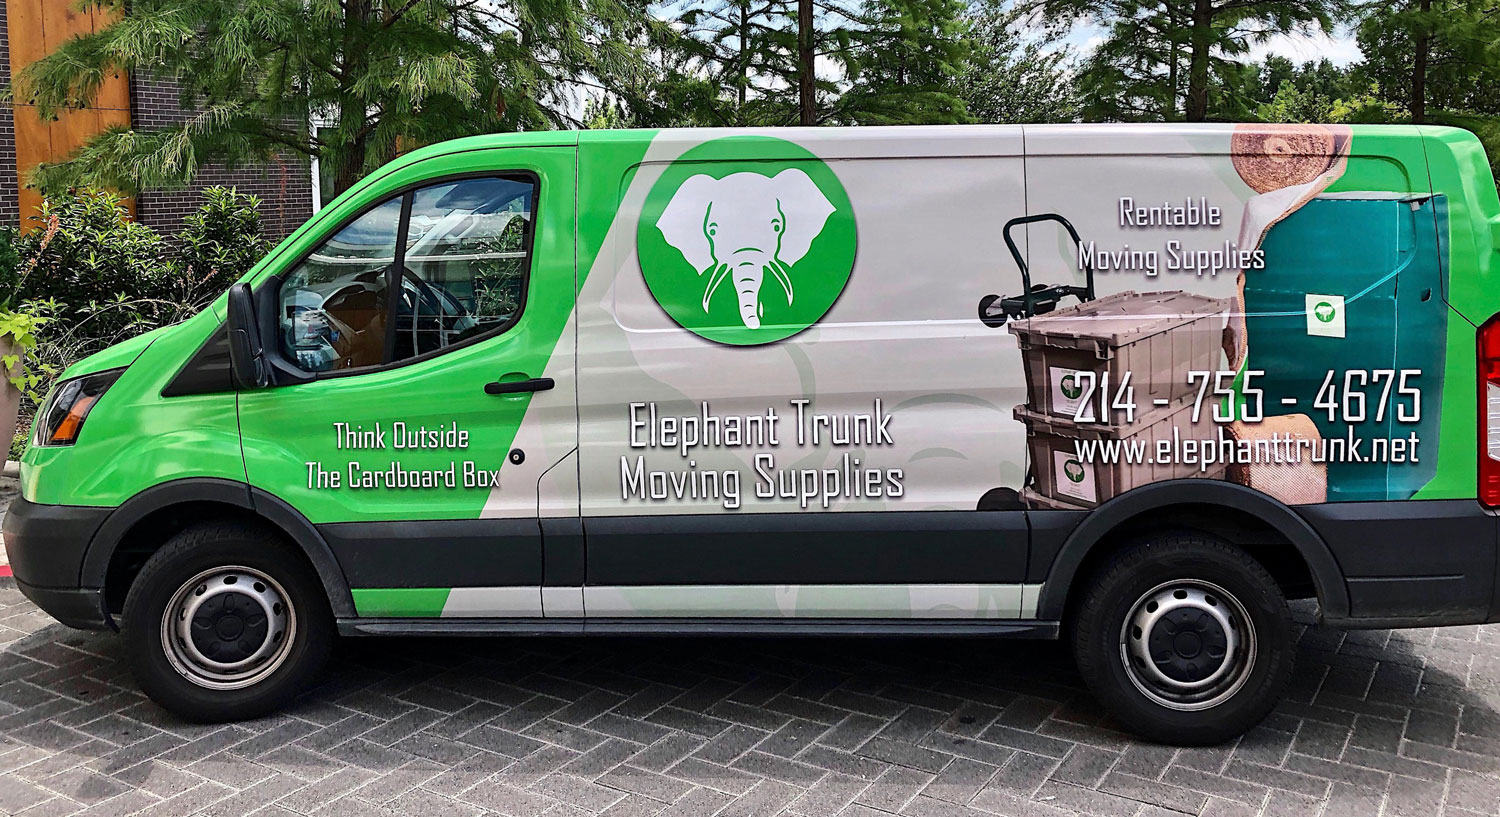 courtesy Elephant Trunk Moving Supplies